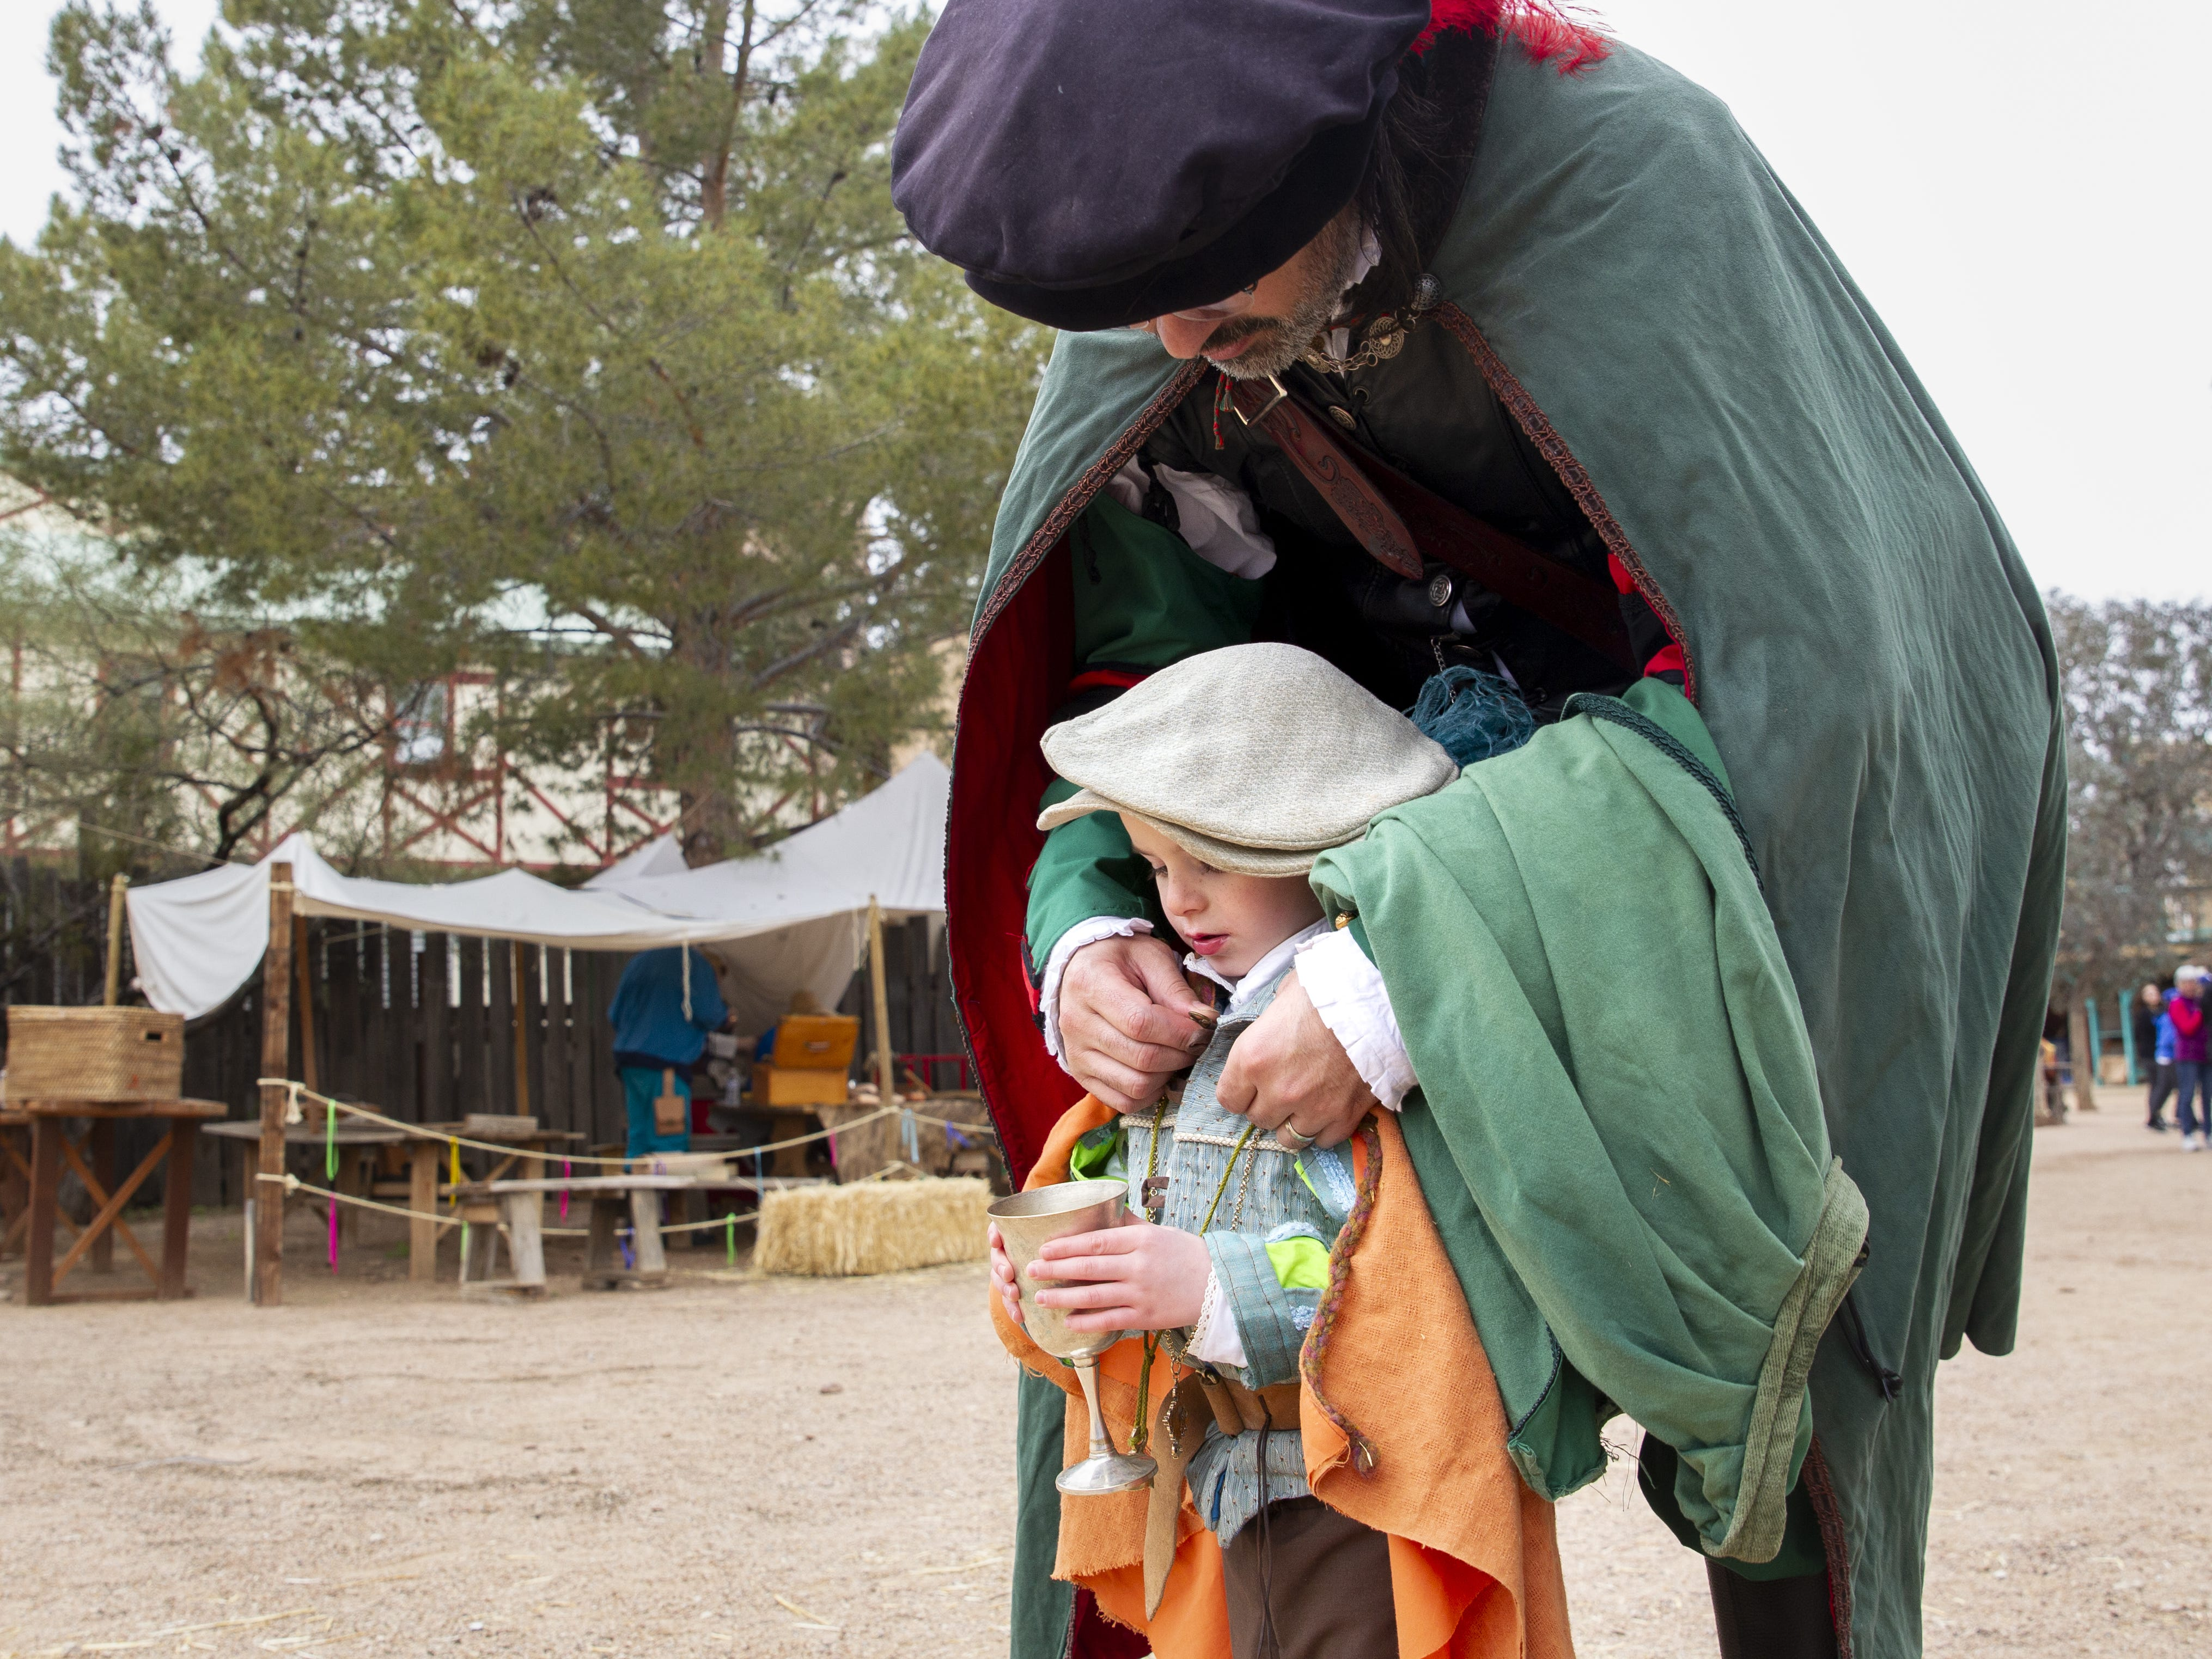 A man attending as the Sellsword puts a cloak on his son Romeo at the Arizona Renaissance Festival 2019 on Feb. 9, 2019 in Gold Canyon, Ariz.